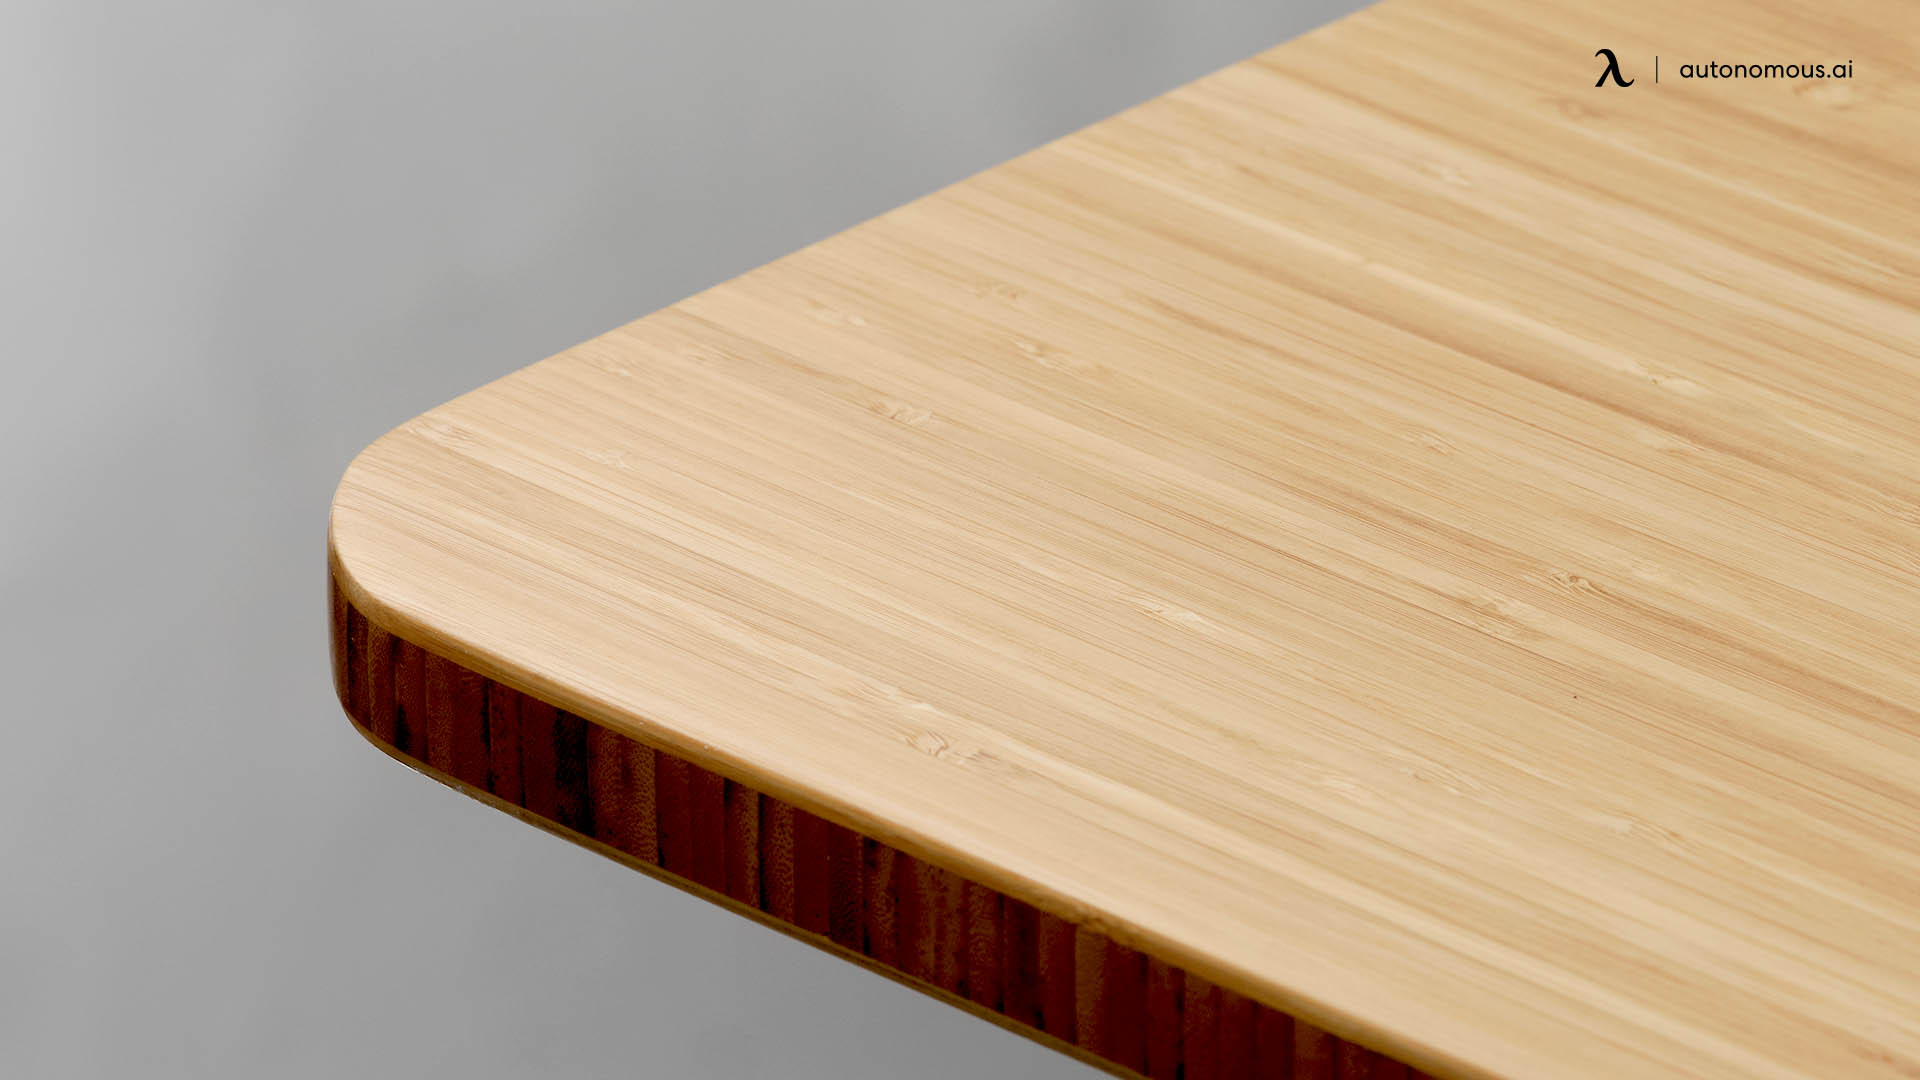 Is Bamboo Good for Your Desk?